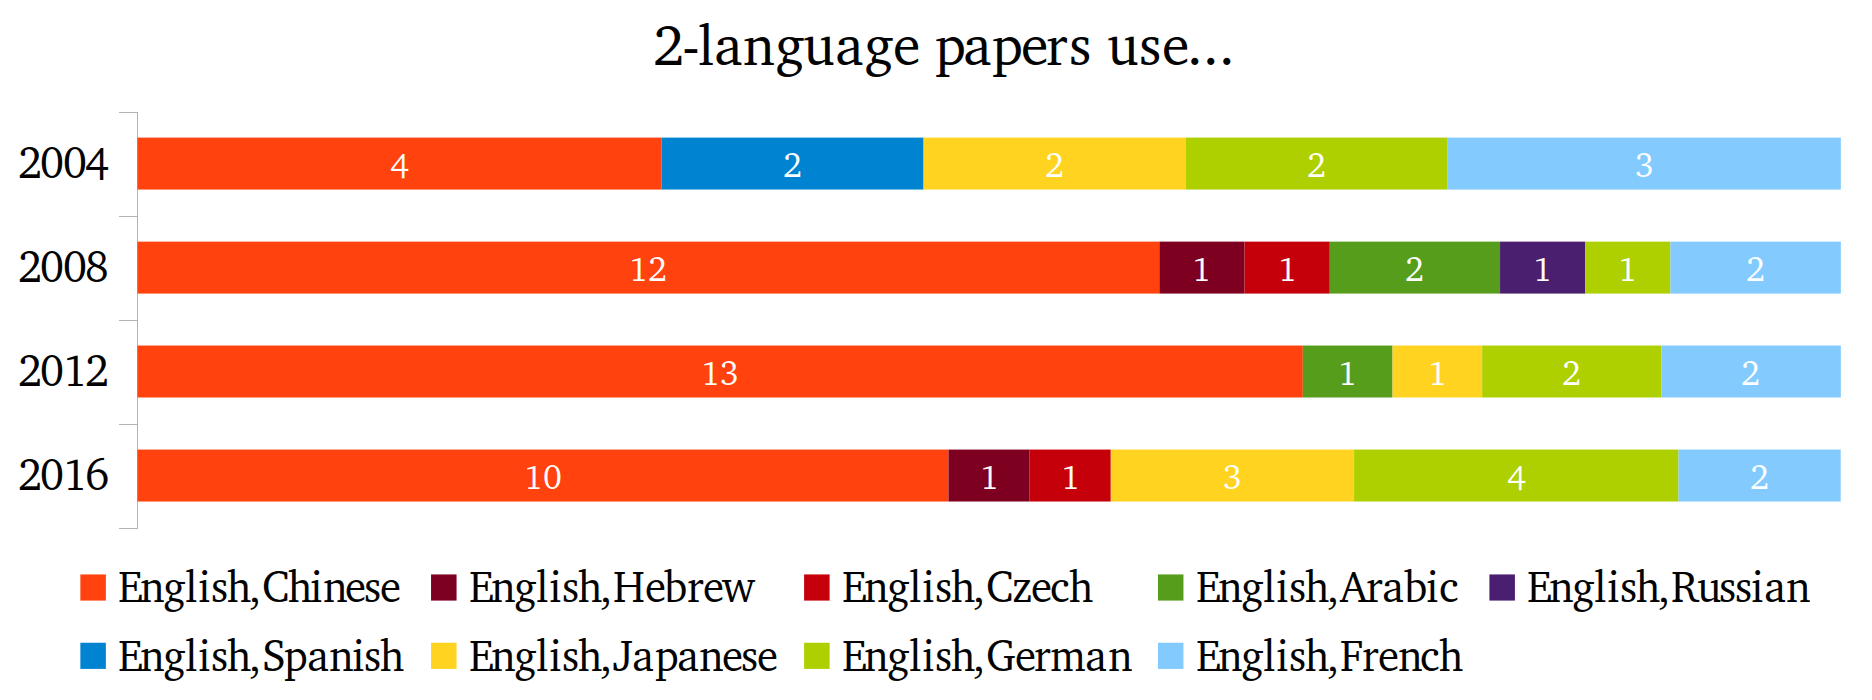 2-language papers use...